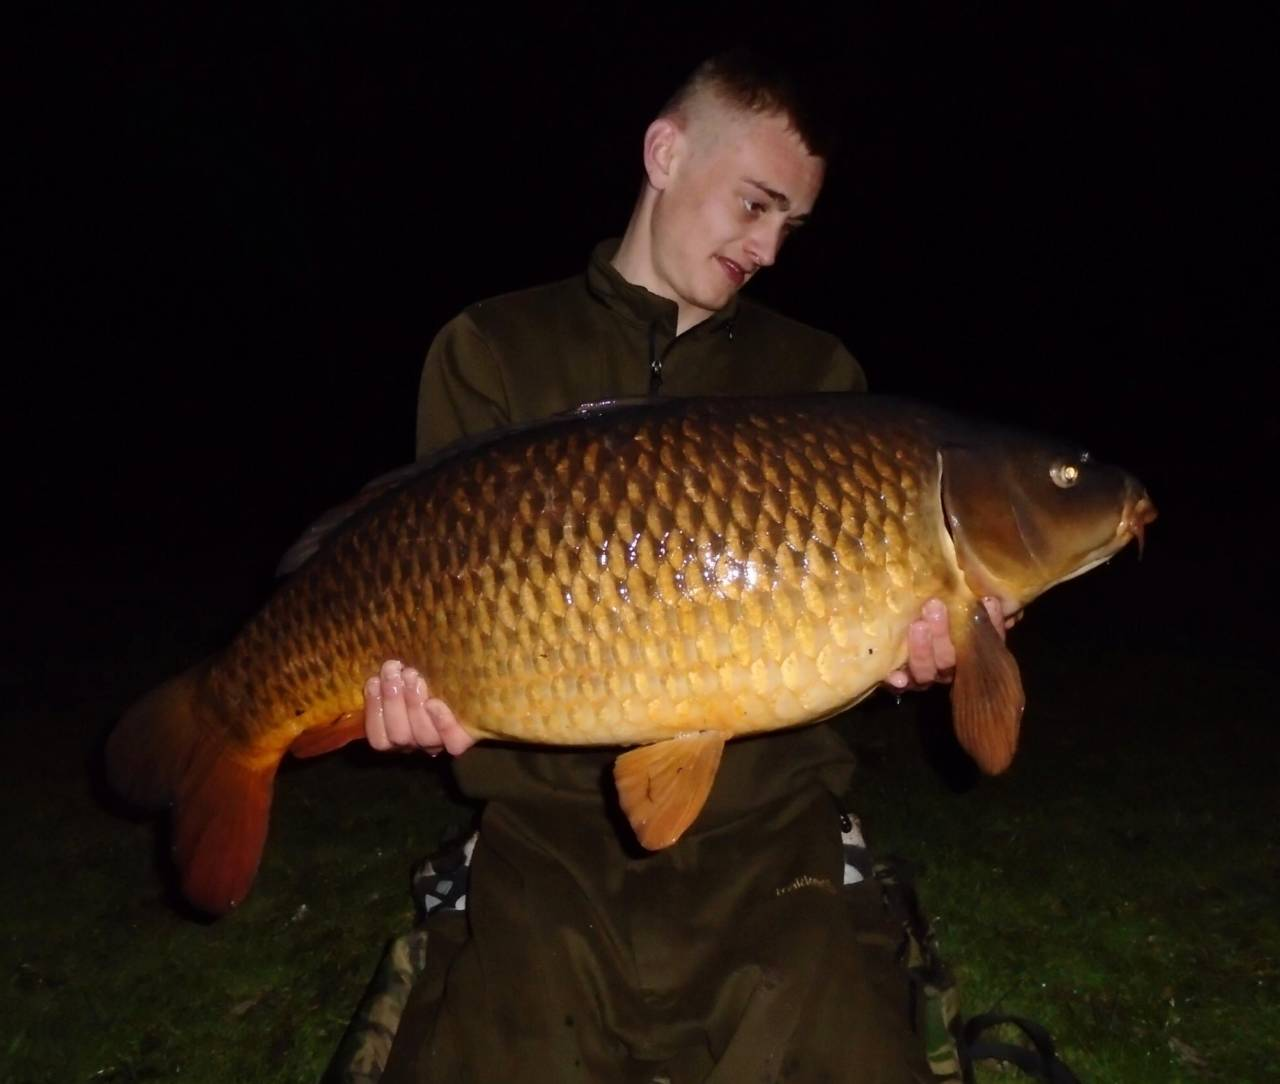 the crave boilies tempted this carp